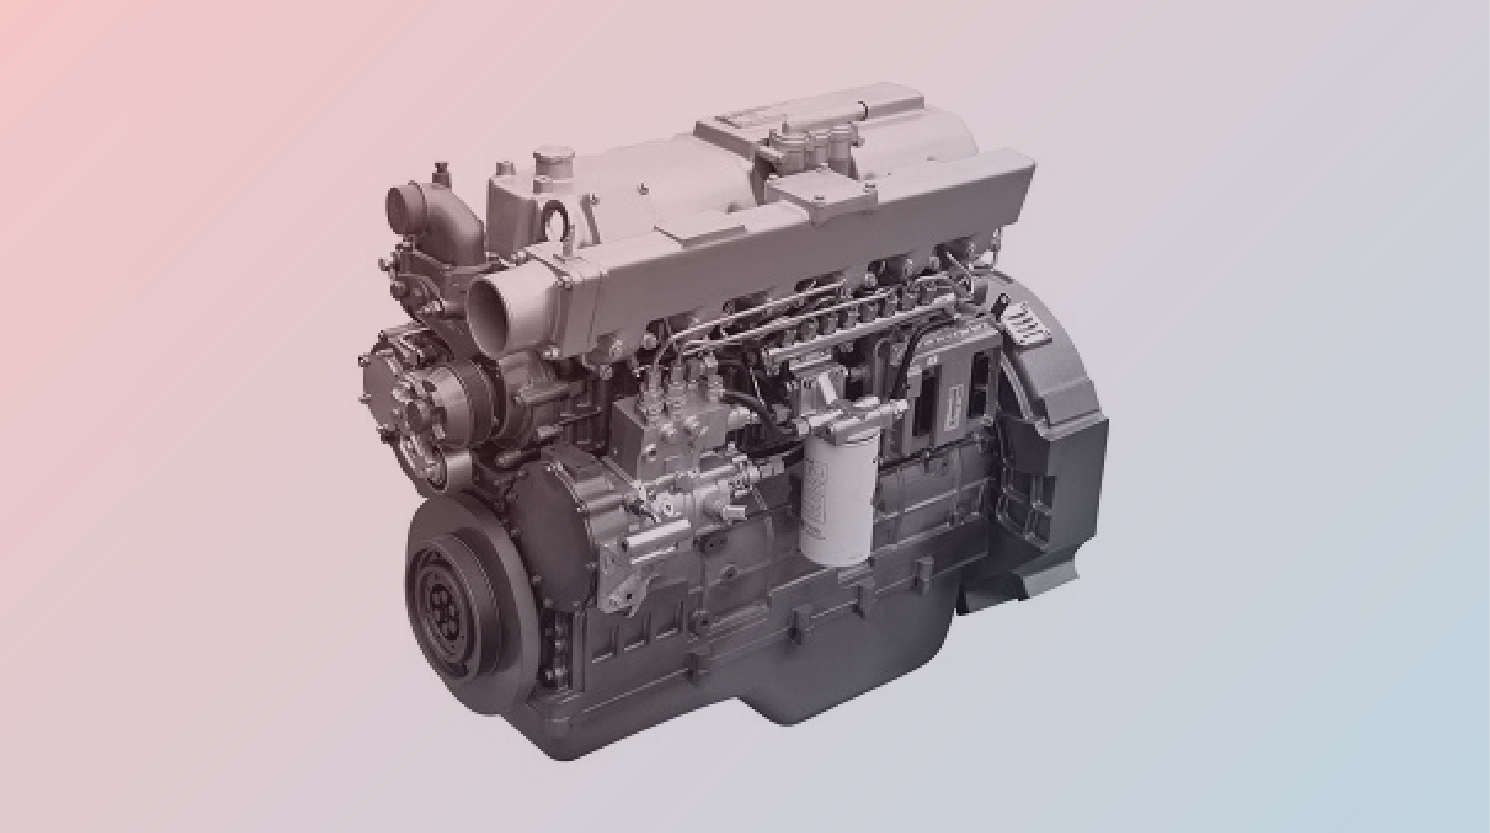 Power Gen. Engines